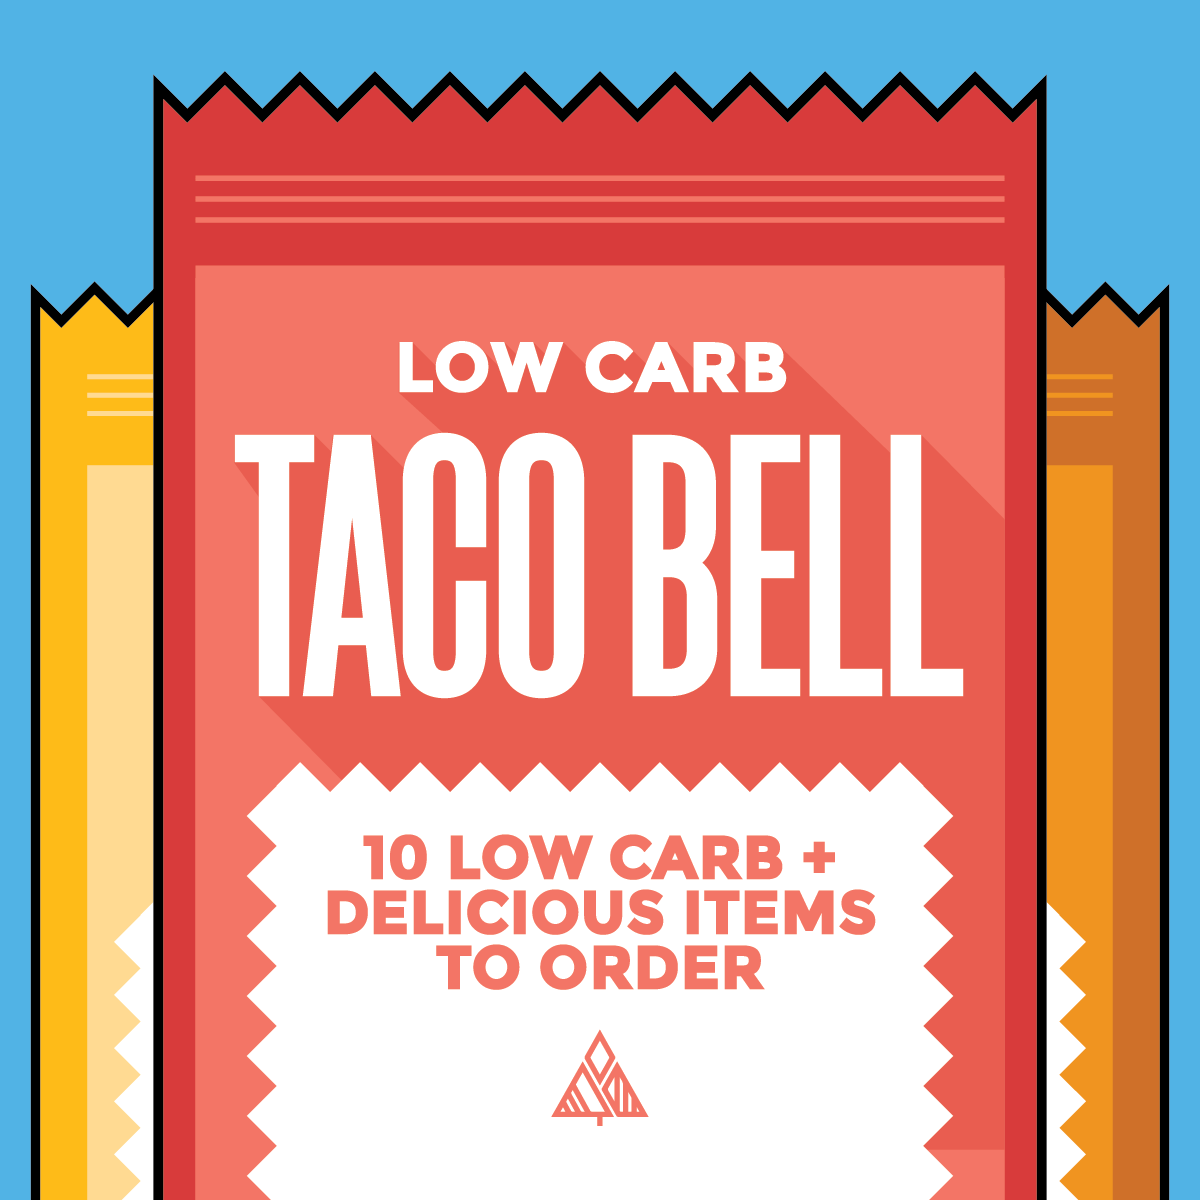 Low Carb Taco Bell – Top 10 Low Carb + Delicious Items